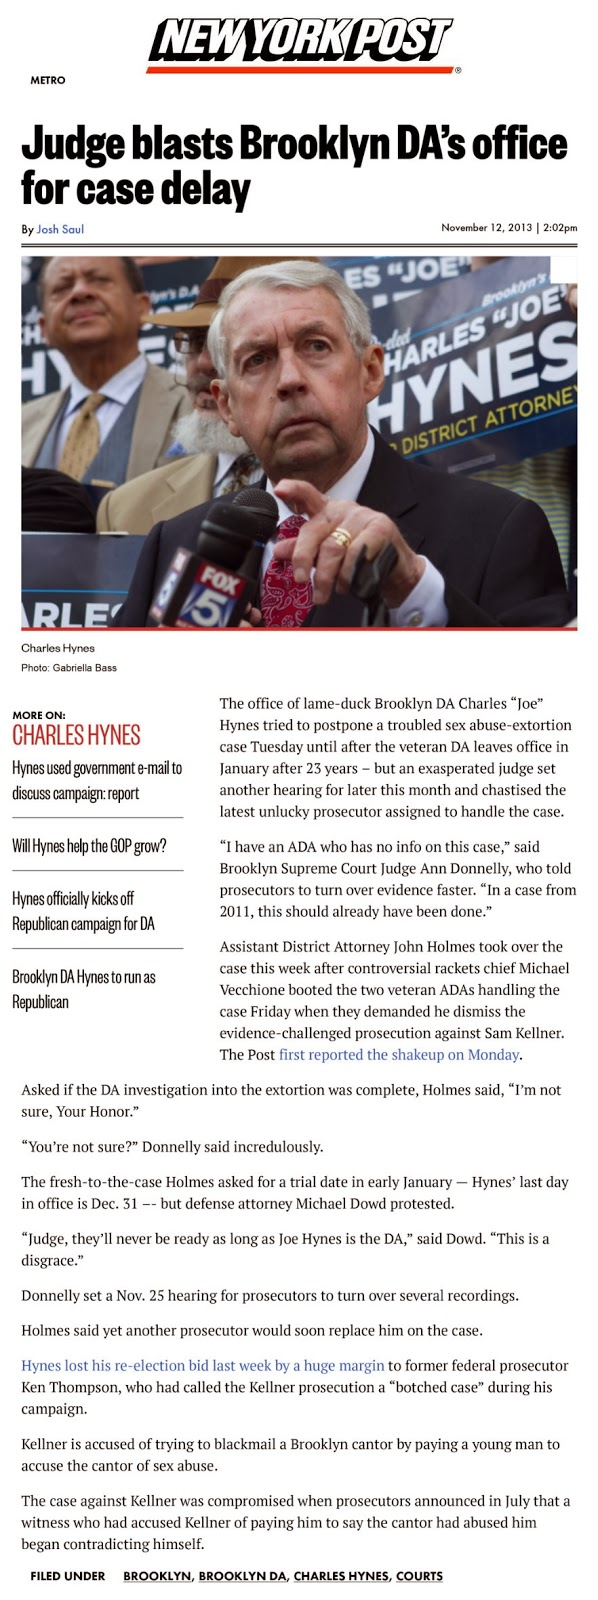 http://nypost.com/2013/11/12/judge-blasts-brooklyn-das-office-for-case-delay/